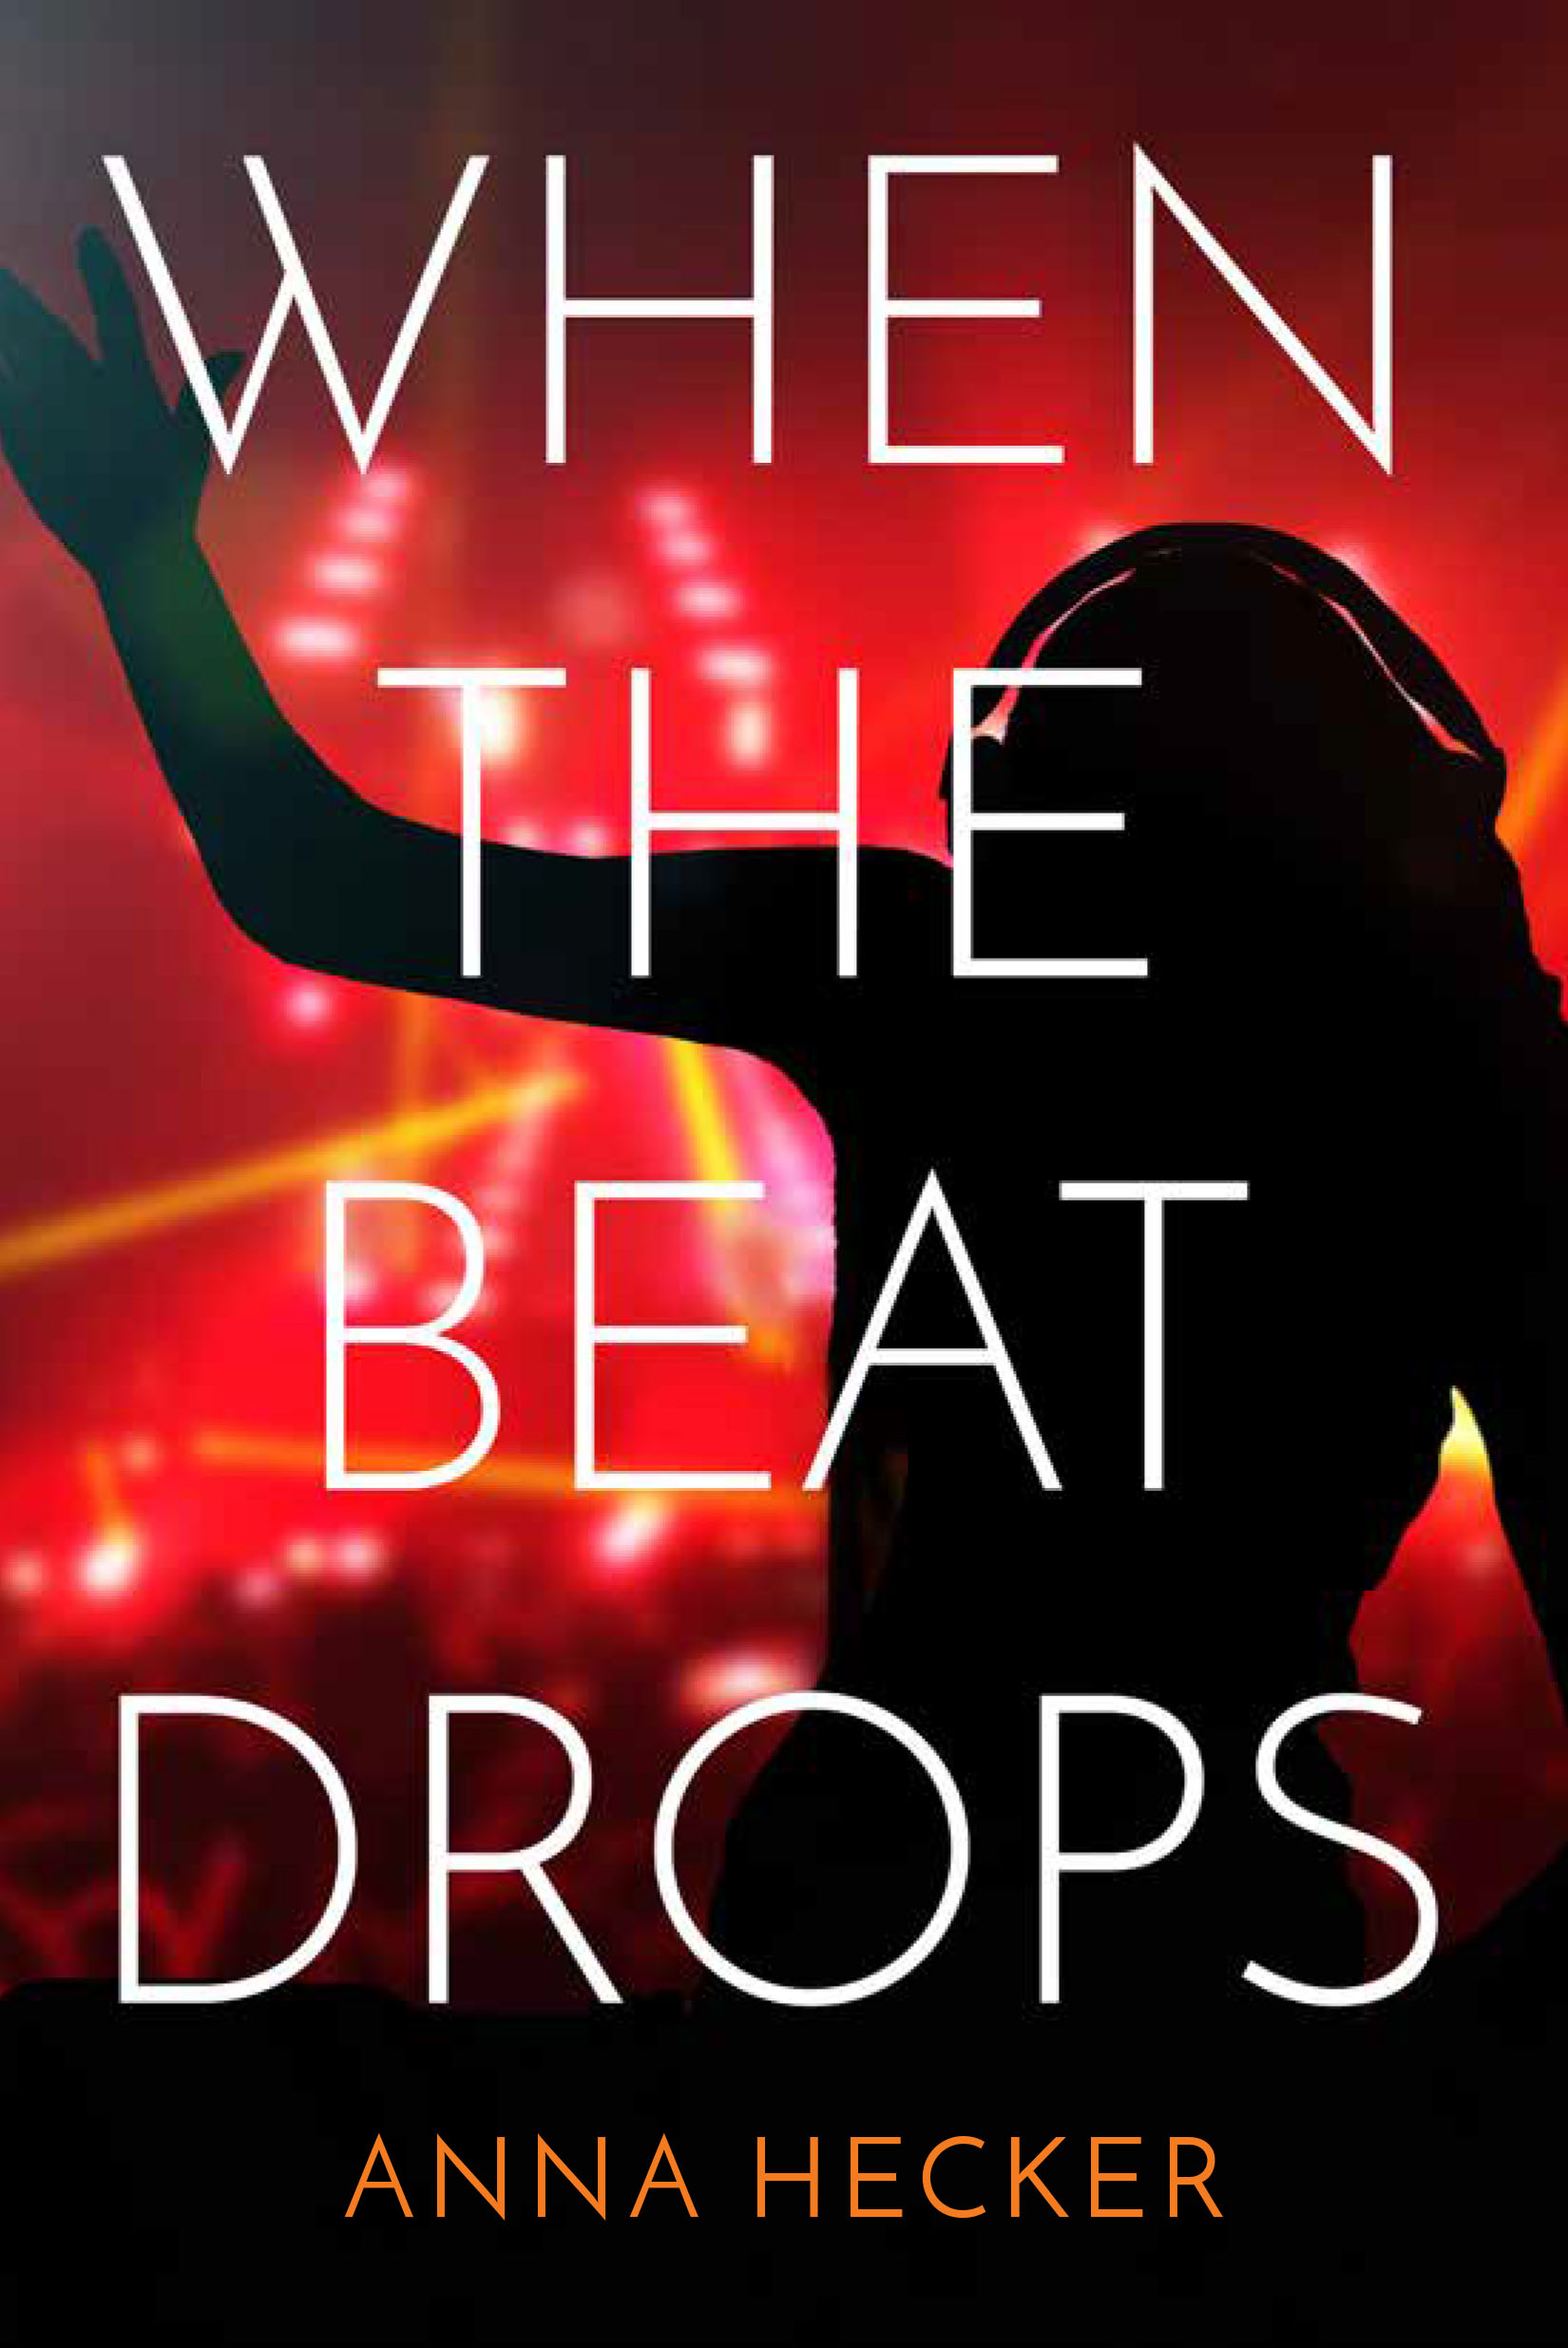 Book Launch: When the Beat Drops by Anna Hecker